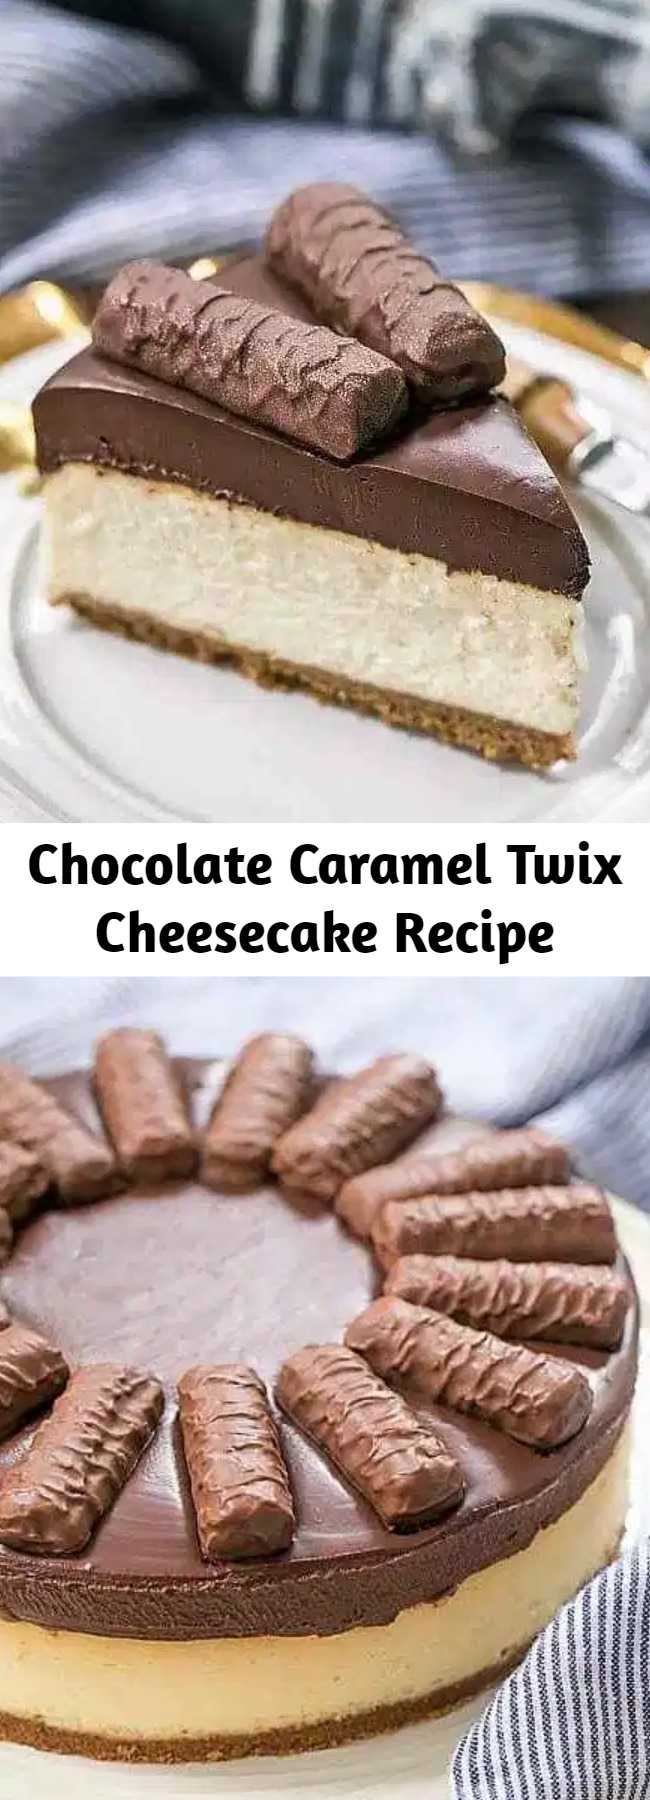 Chocolate Caramel Twix Cheesecake Recipe - A blissful Chocolate Caramel Twix Cheesecake with a dreamy cheesecake topped with a thick, exquisite ganache before a drizzle of buttery caramel sauce! Every bite will make you swoon! #cheesecake #twix #caramel #ganache